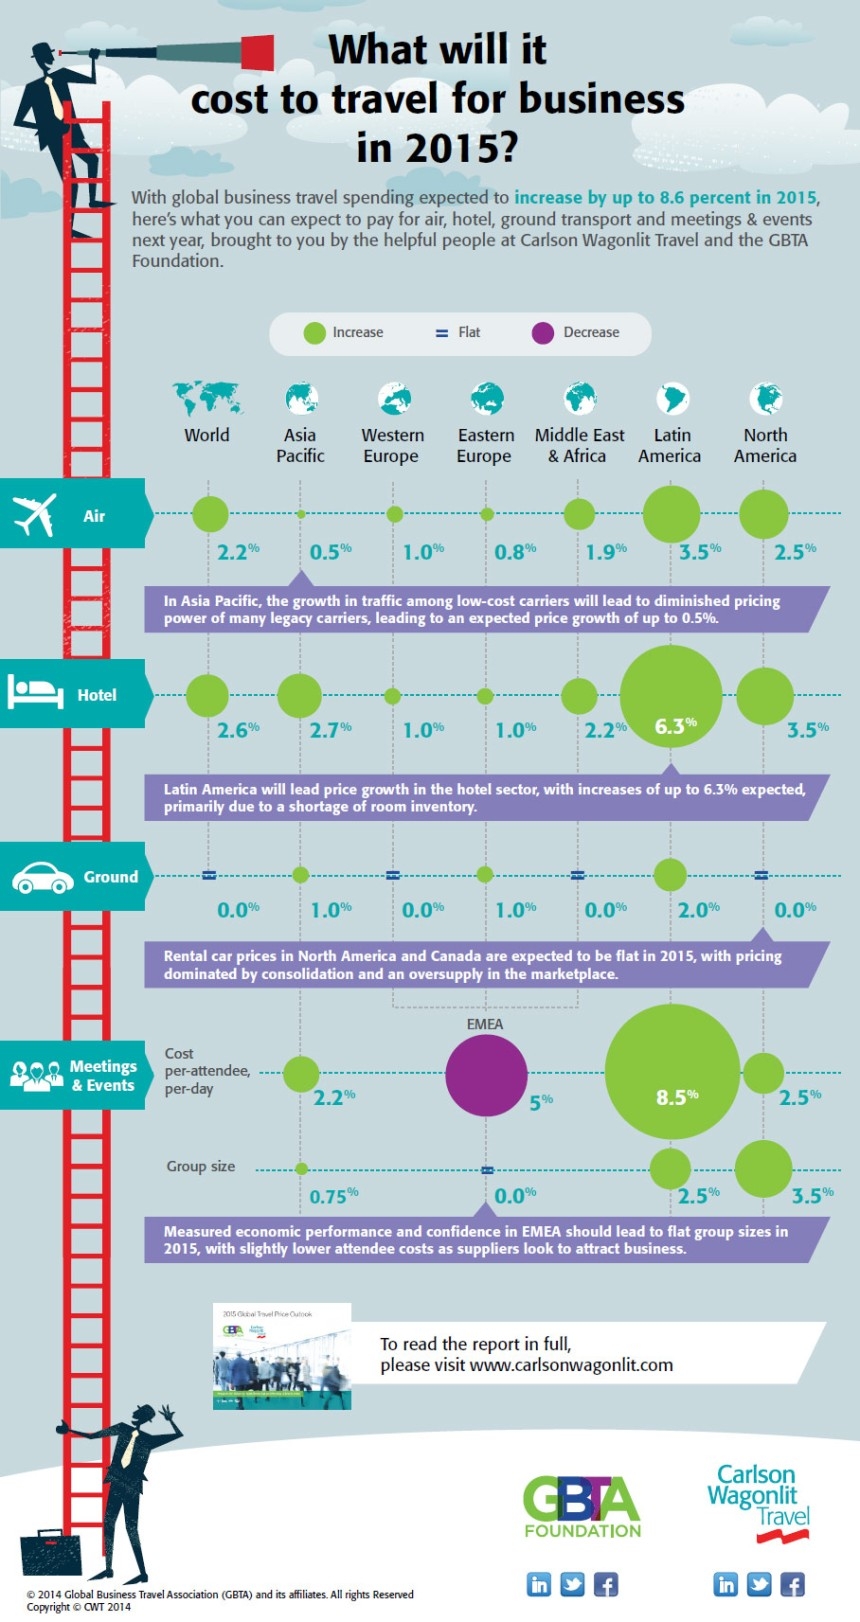 forecast-business-travel-cost-in-2015-infographic